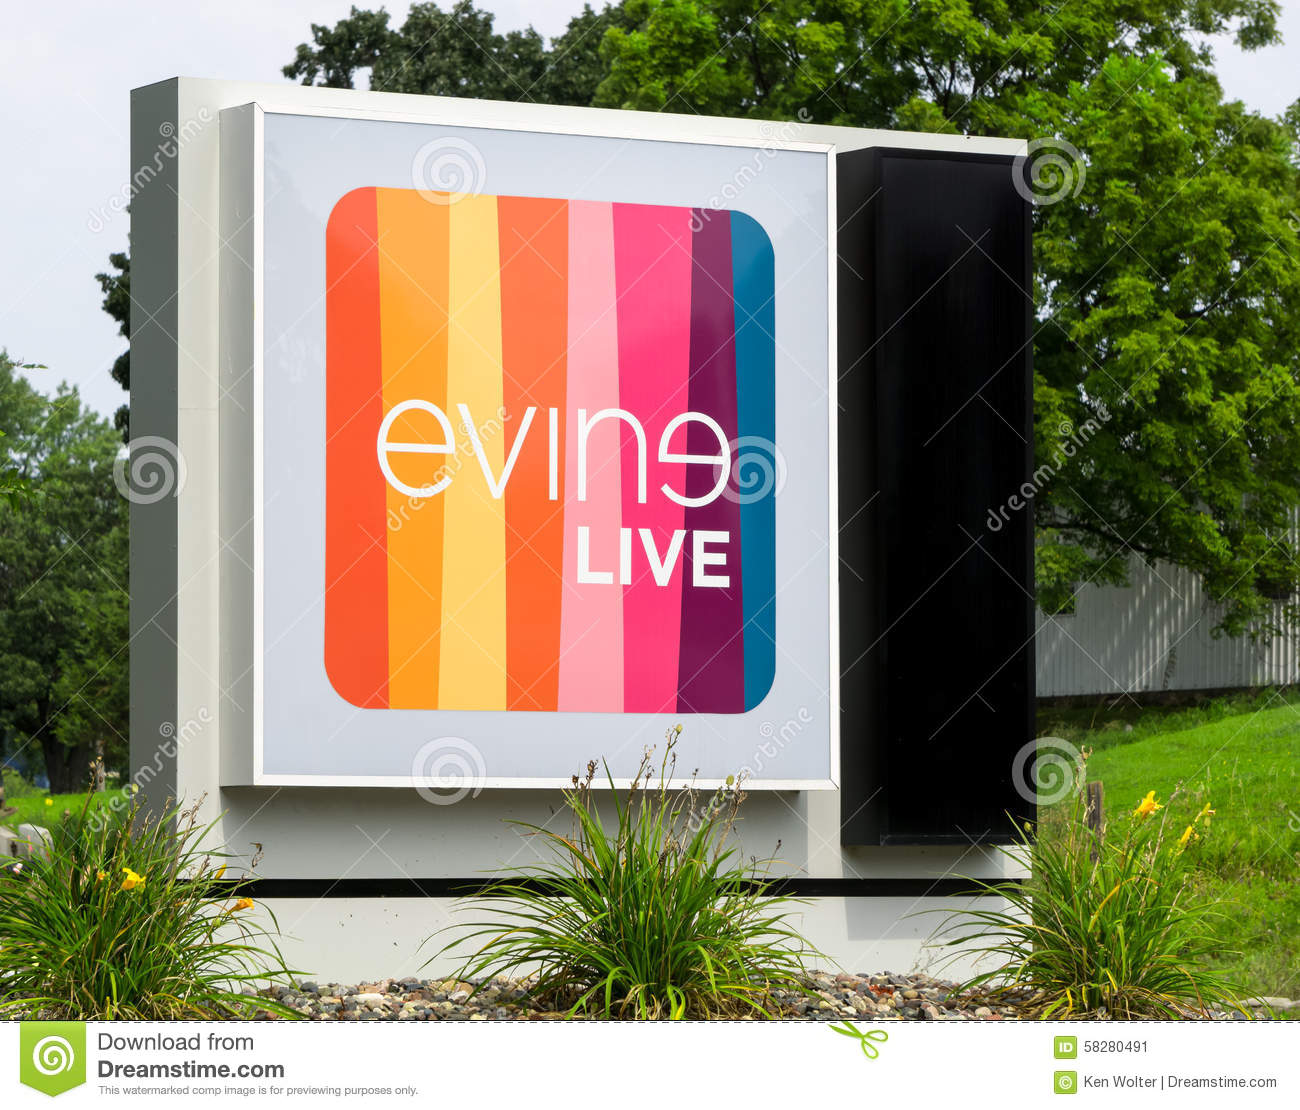 Evine live corporate headquarters and sign evine live is a cable